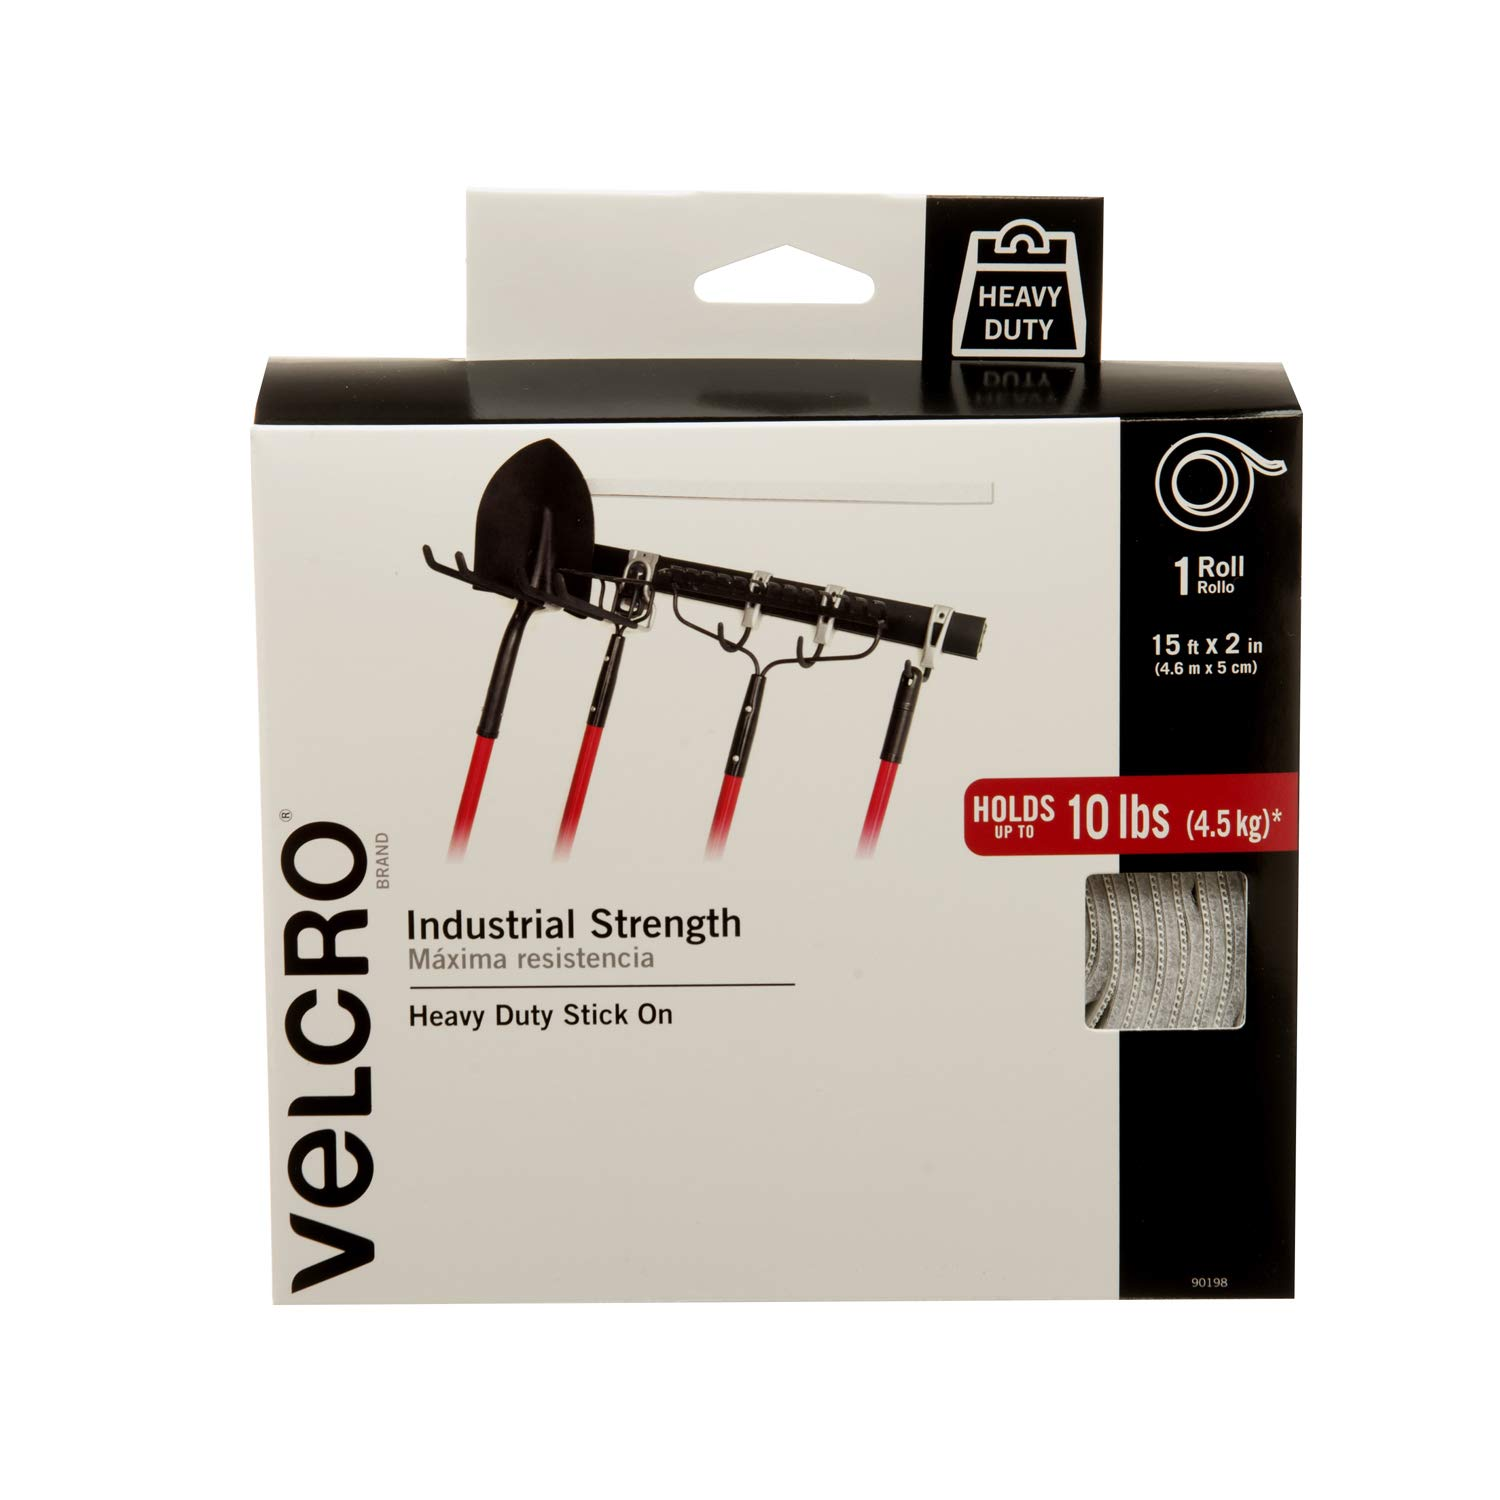 VELCRO Brand Industrial Strength Fasteners | Stick-On Adhesive | Professional Grade Heavy Duty Strength Holds up to 10 lbs on Smooth Surfaces | Indoor Outdoor Use | 15ft x 2in Tape, White by VELCRO Brand